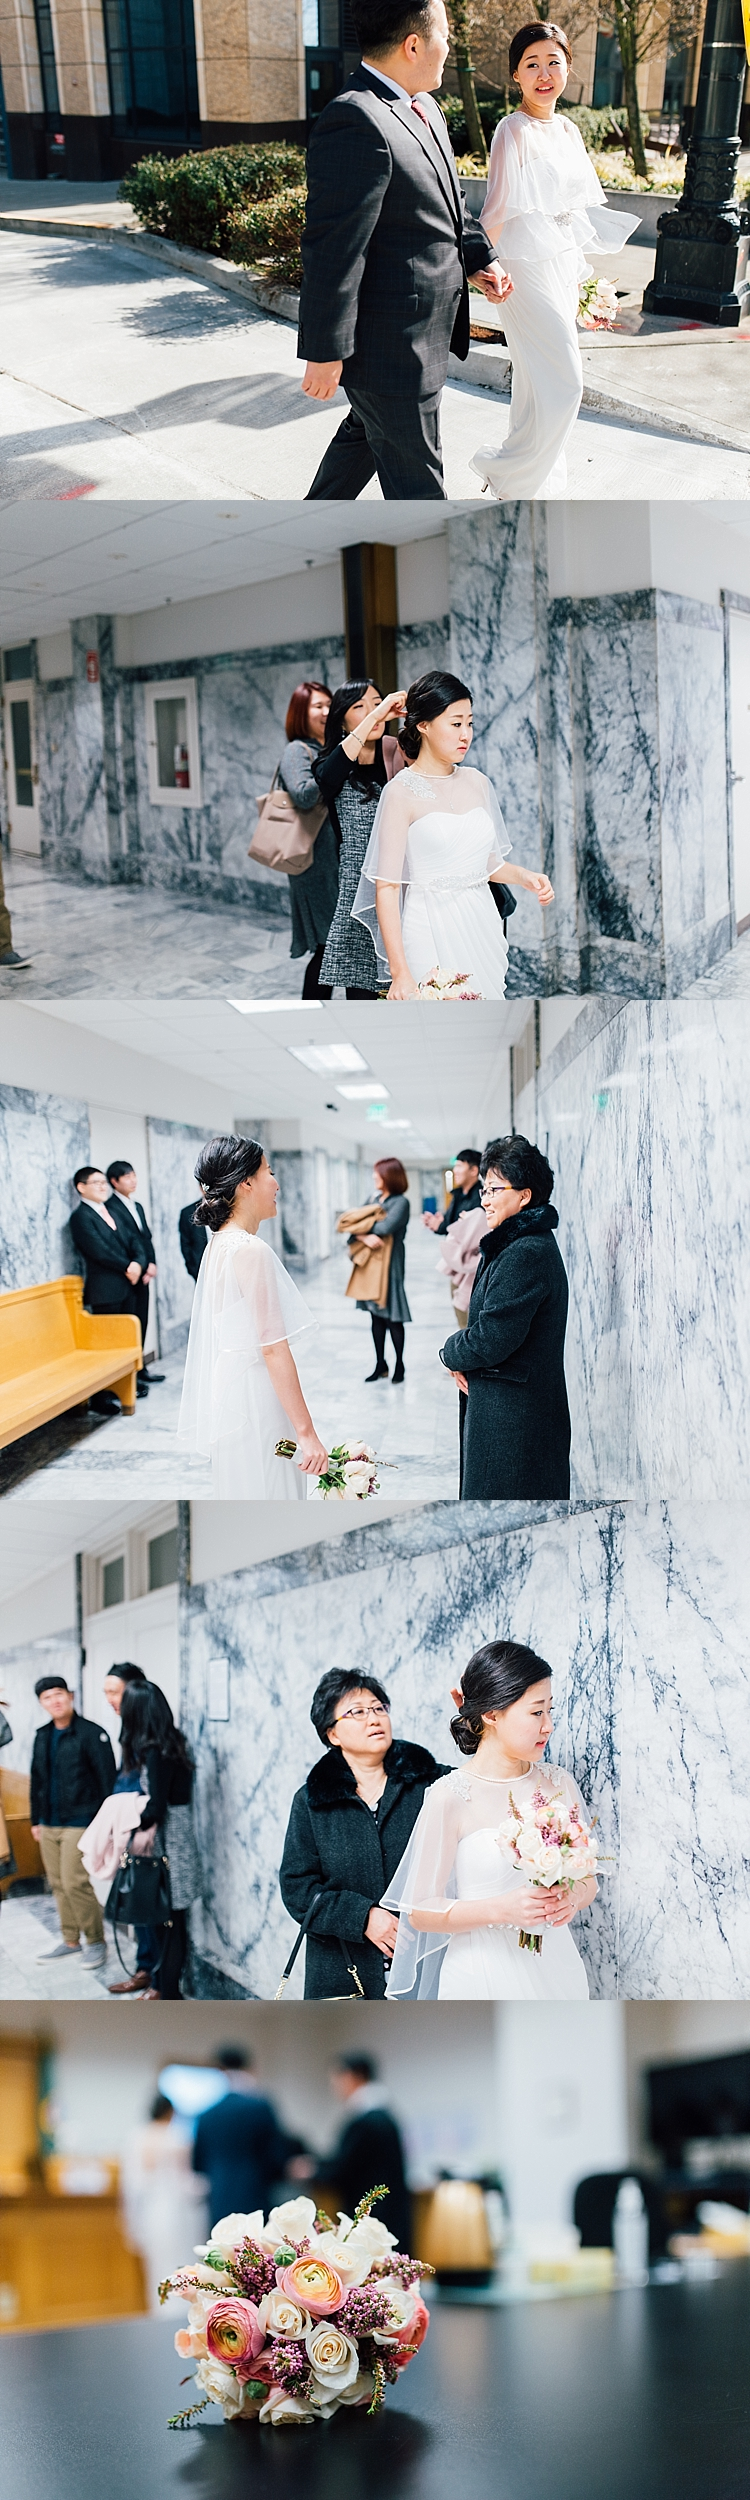 Seattle Courthouse Wedding Photographer PNW elopement Photography - Annie & Alan - Ashley Vos Photography-8.jpg